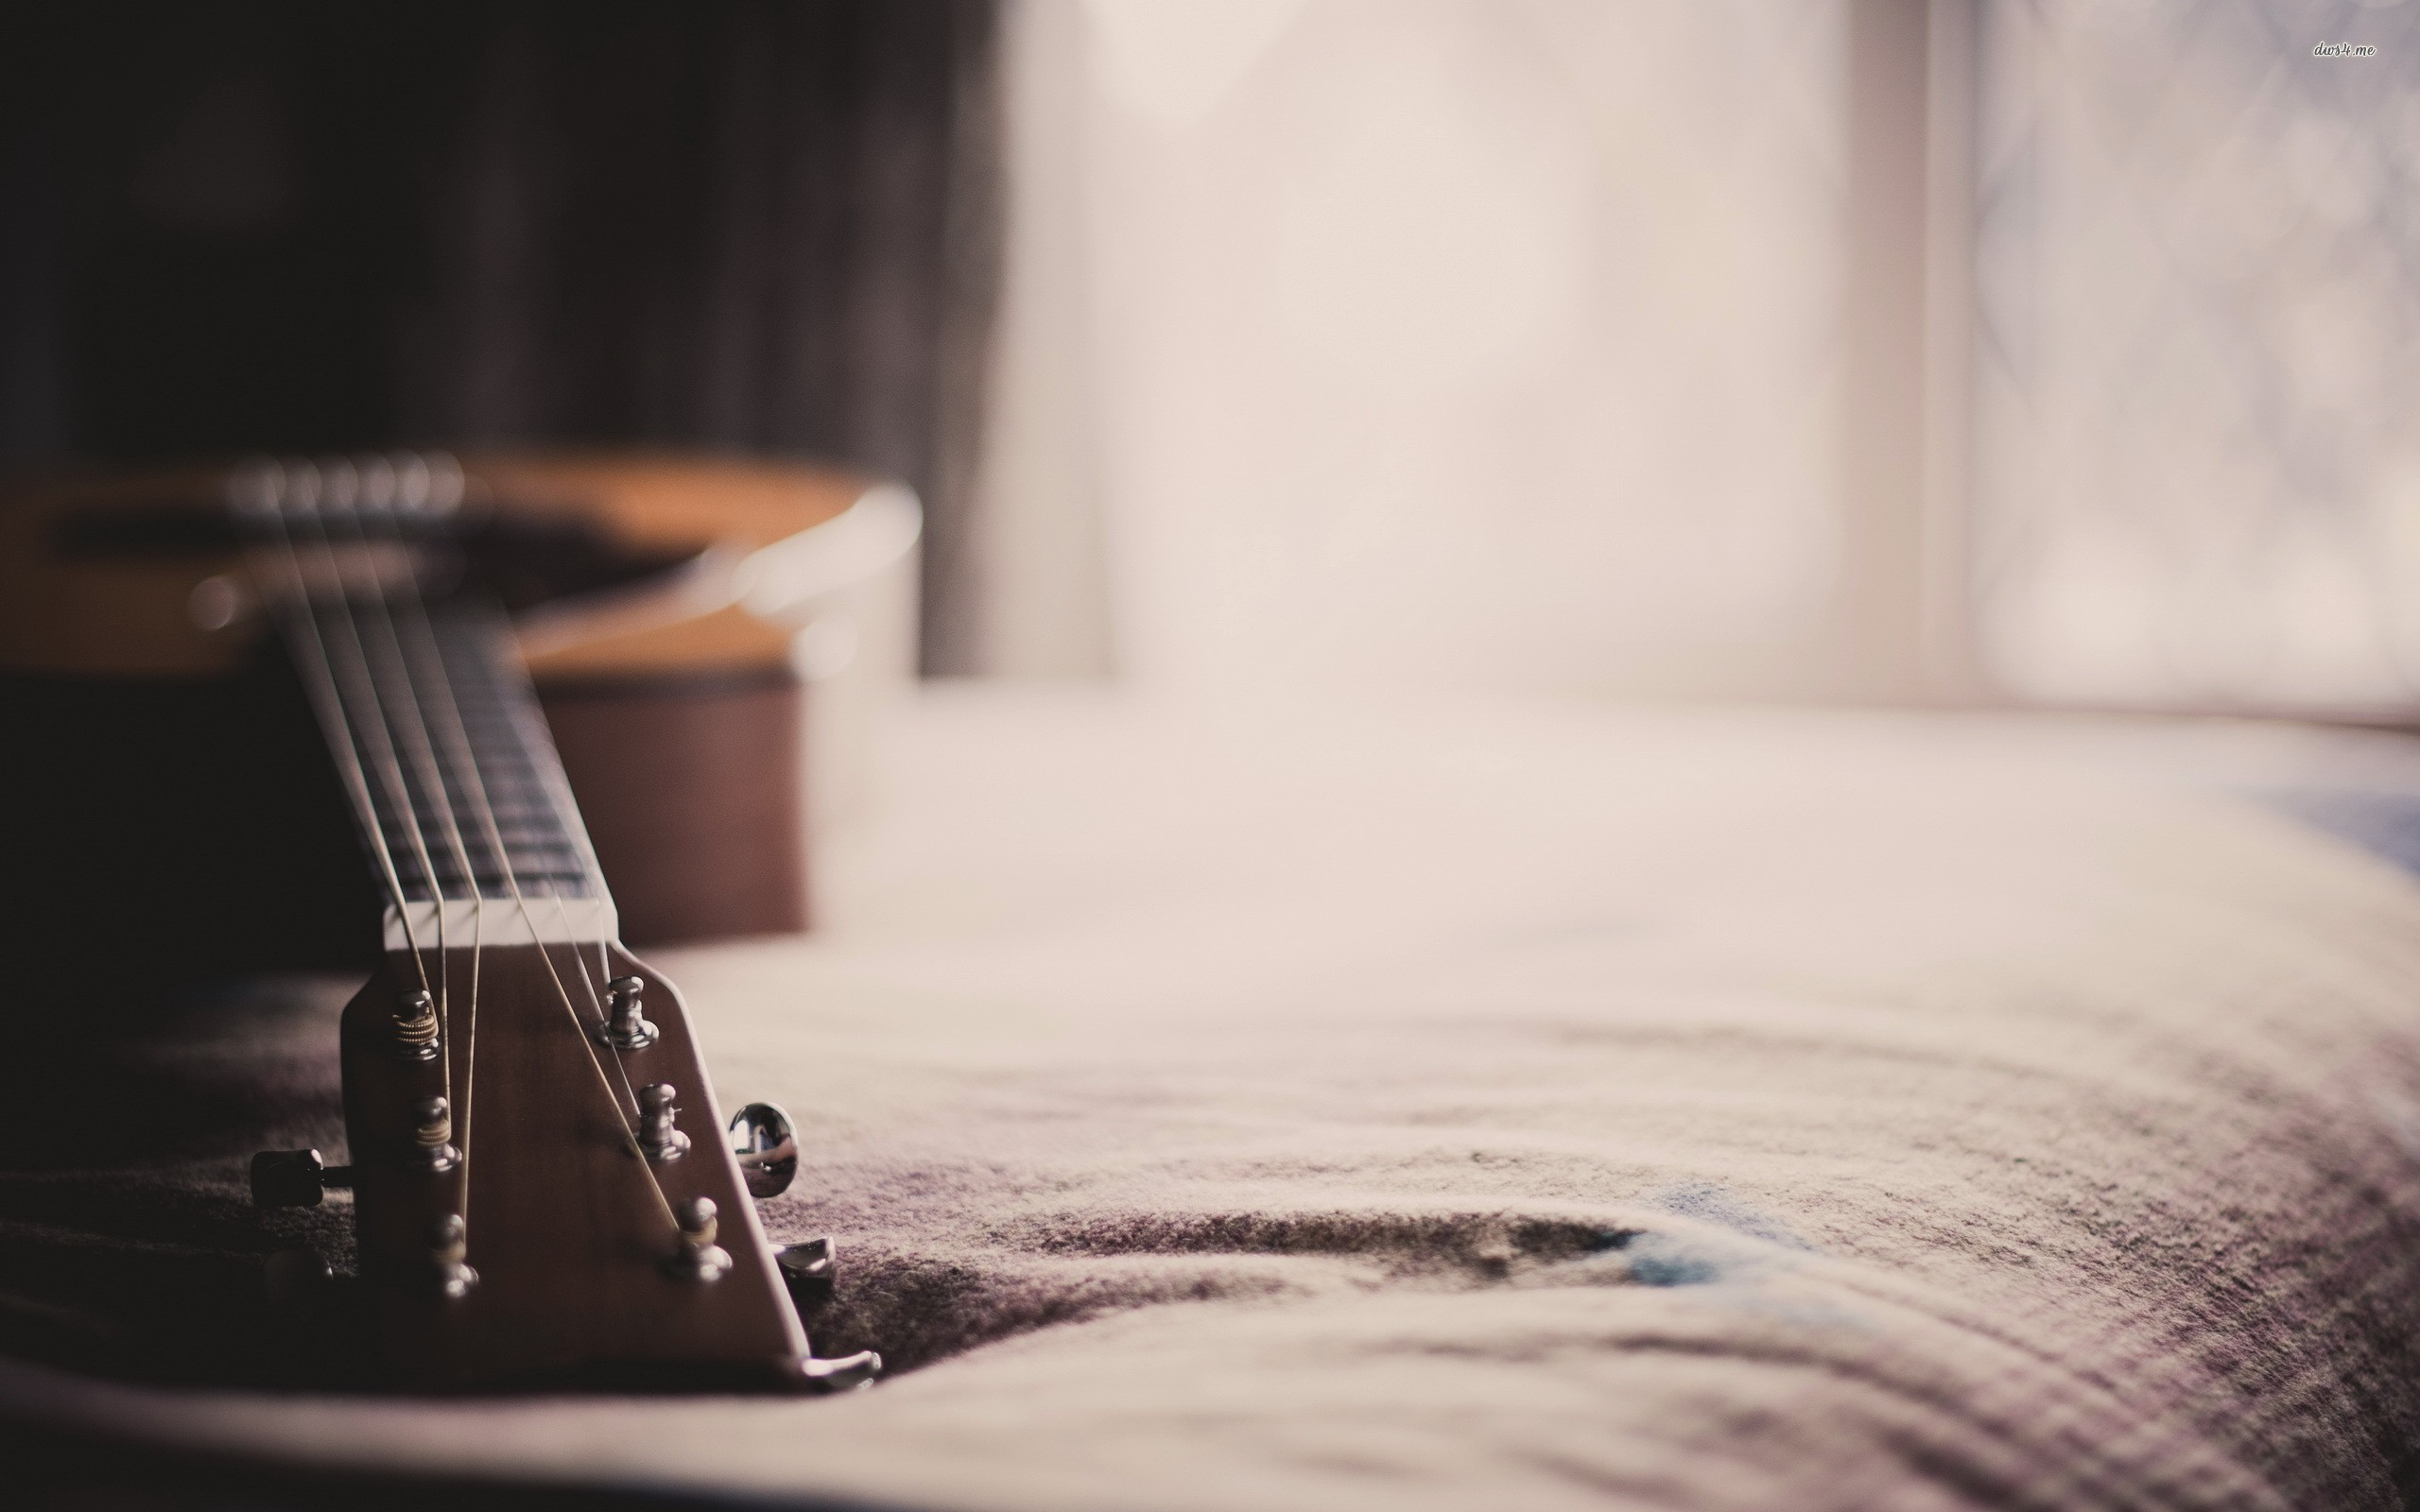 Guitar on the bed wallpaper – 1068877